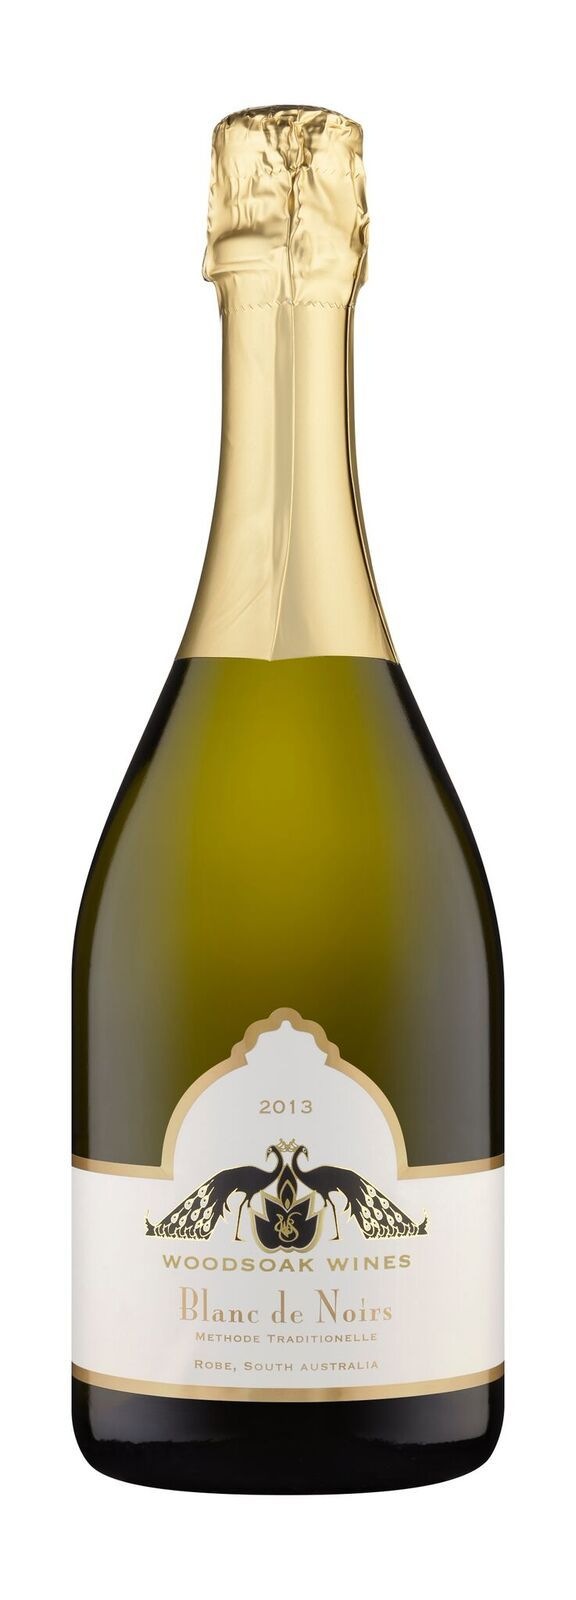 2013 Woodsoak Wines Blanc de Noirs 90 points from Tyson Stelzer  Silver Medal at the Limestone Coast Wine Show